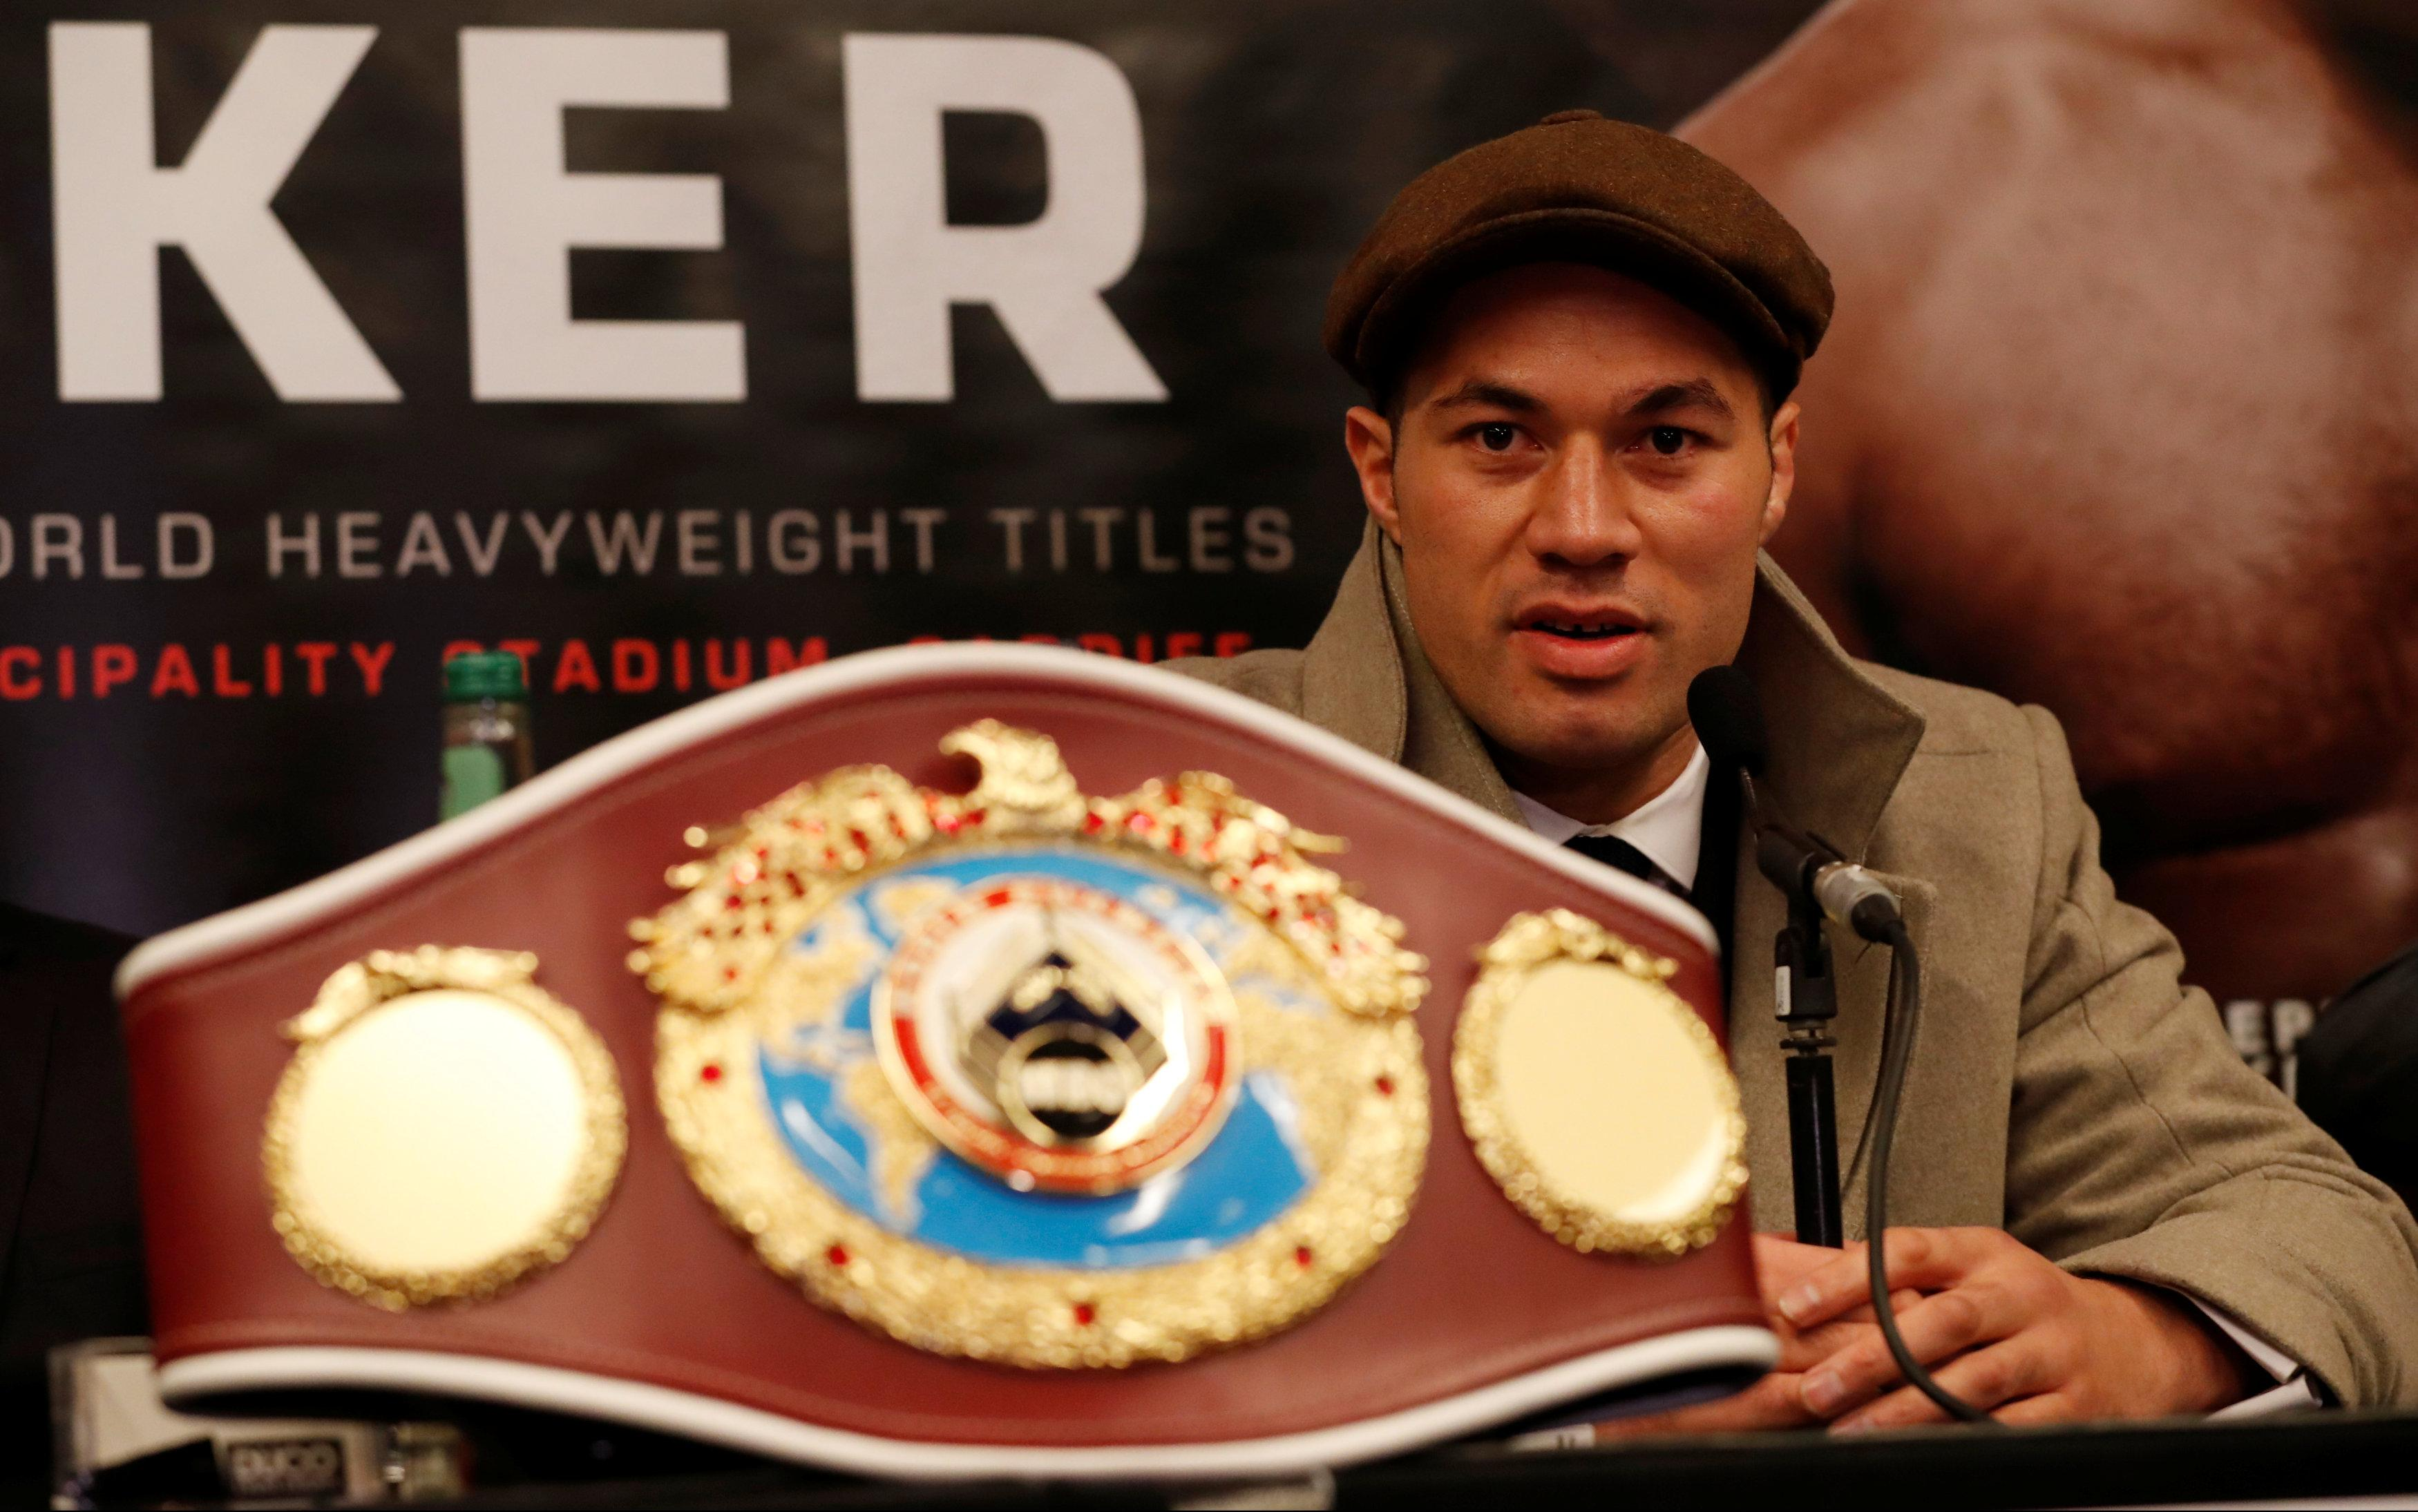 Joseph Parker beat Andy Ruiz in 2016 to be named the WBO heavyweight champion